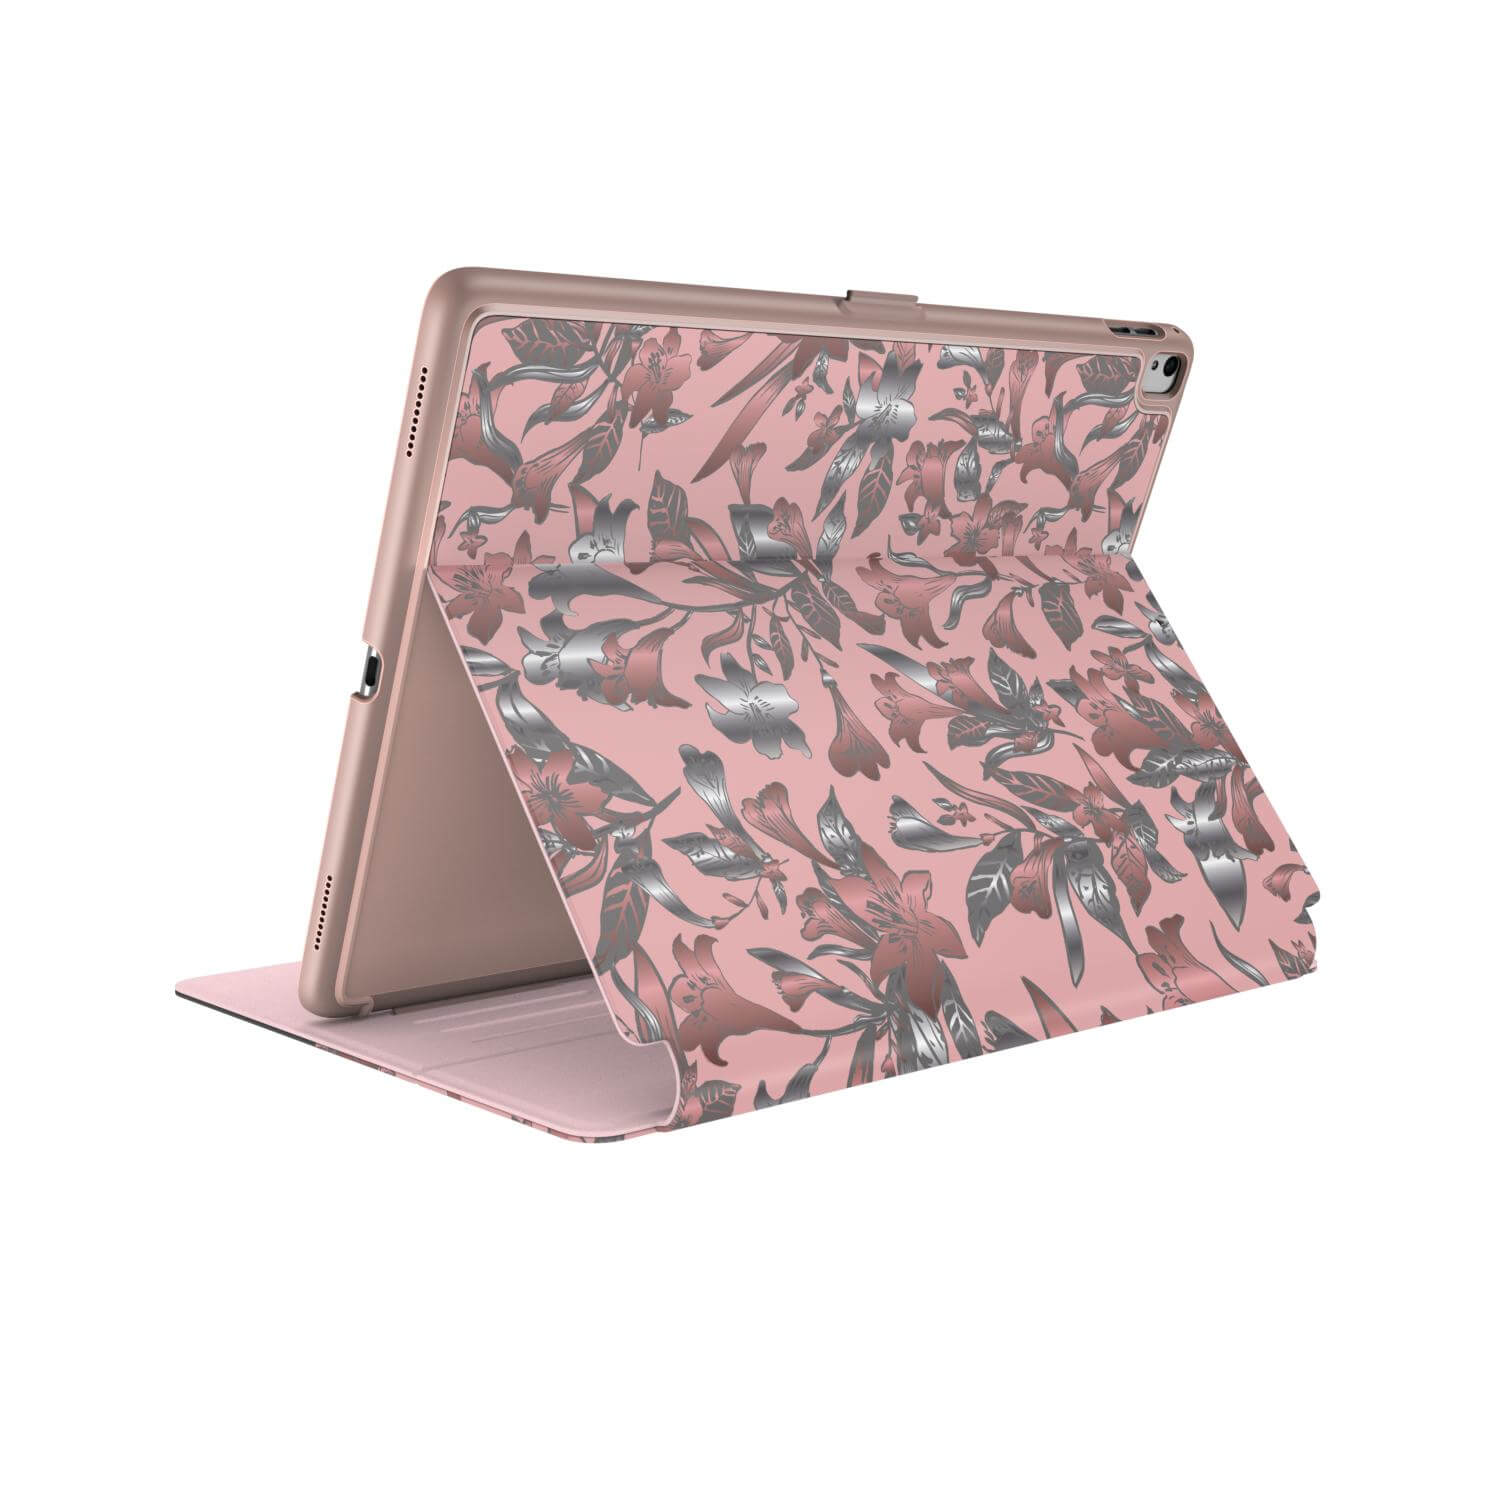 Compare prices for Speck Balance FOLIO PRINT iPad 2017 9.7 inch iPad Pro iPad Air 2 and iPad Air Cases LillyModern Rose Gold/Crepe Pink/Cathedral Grey